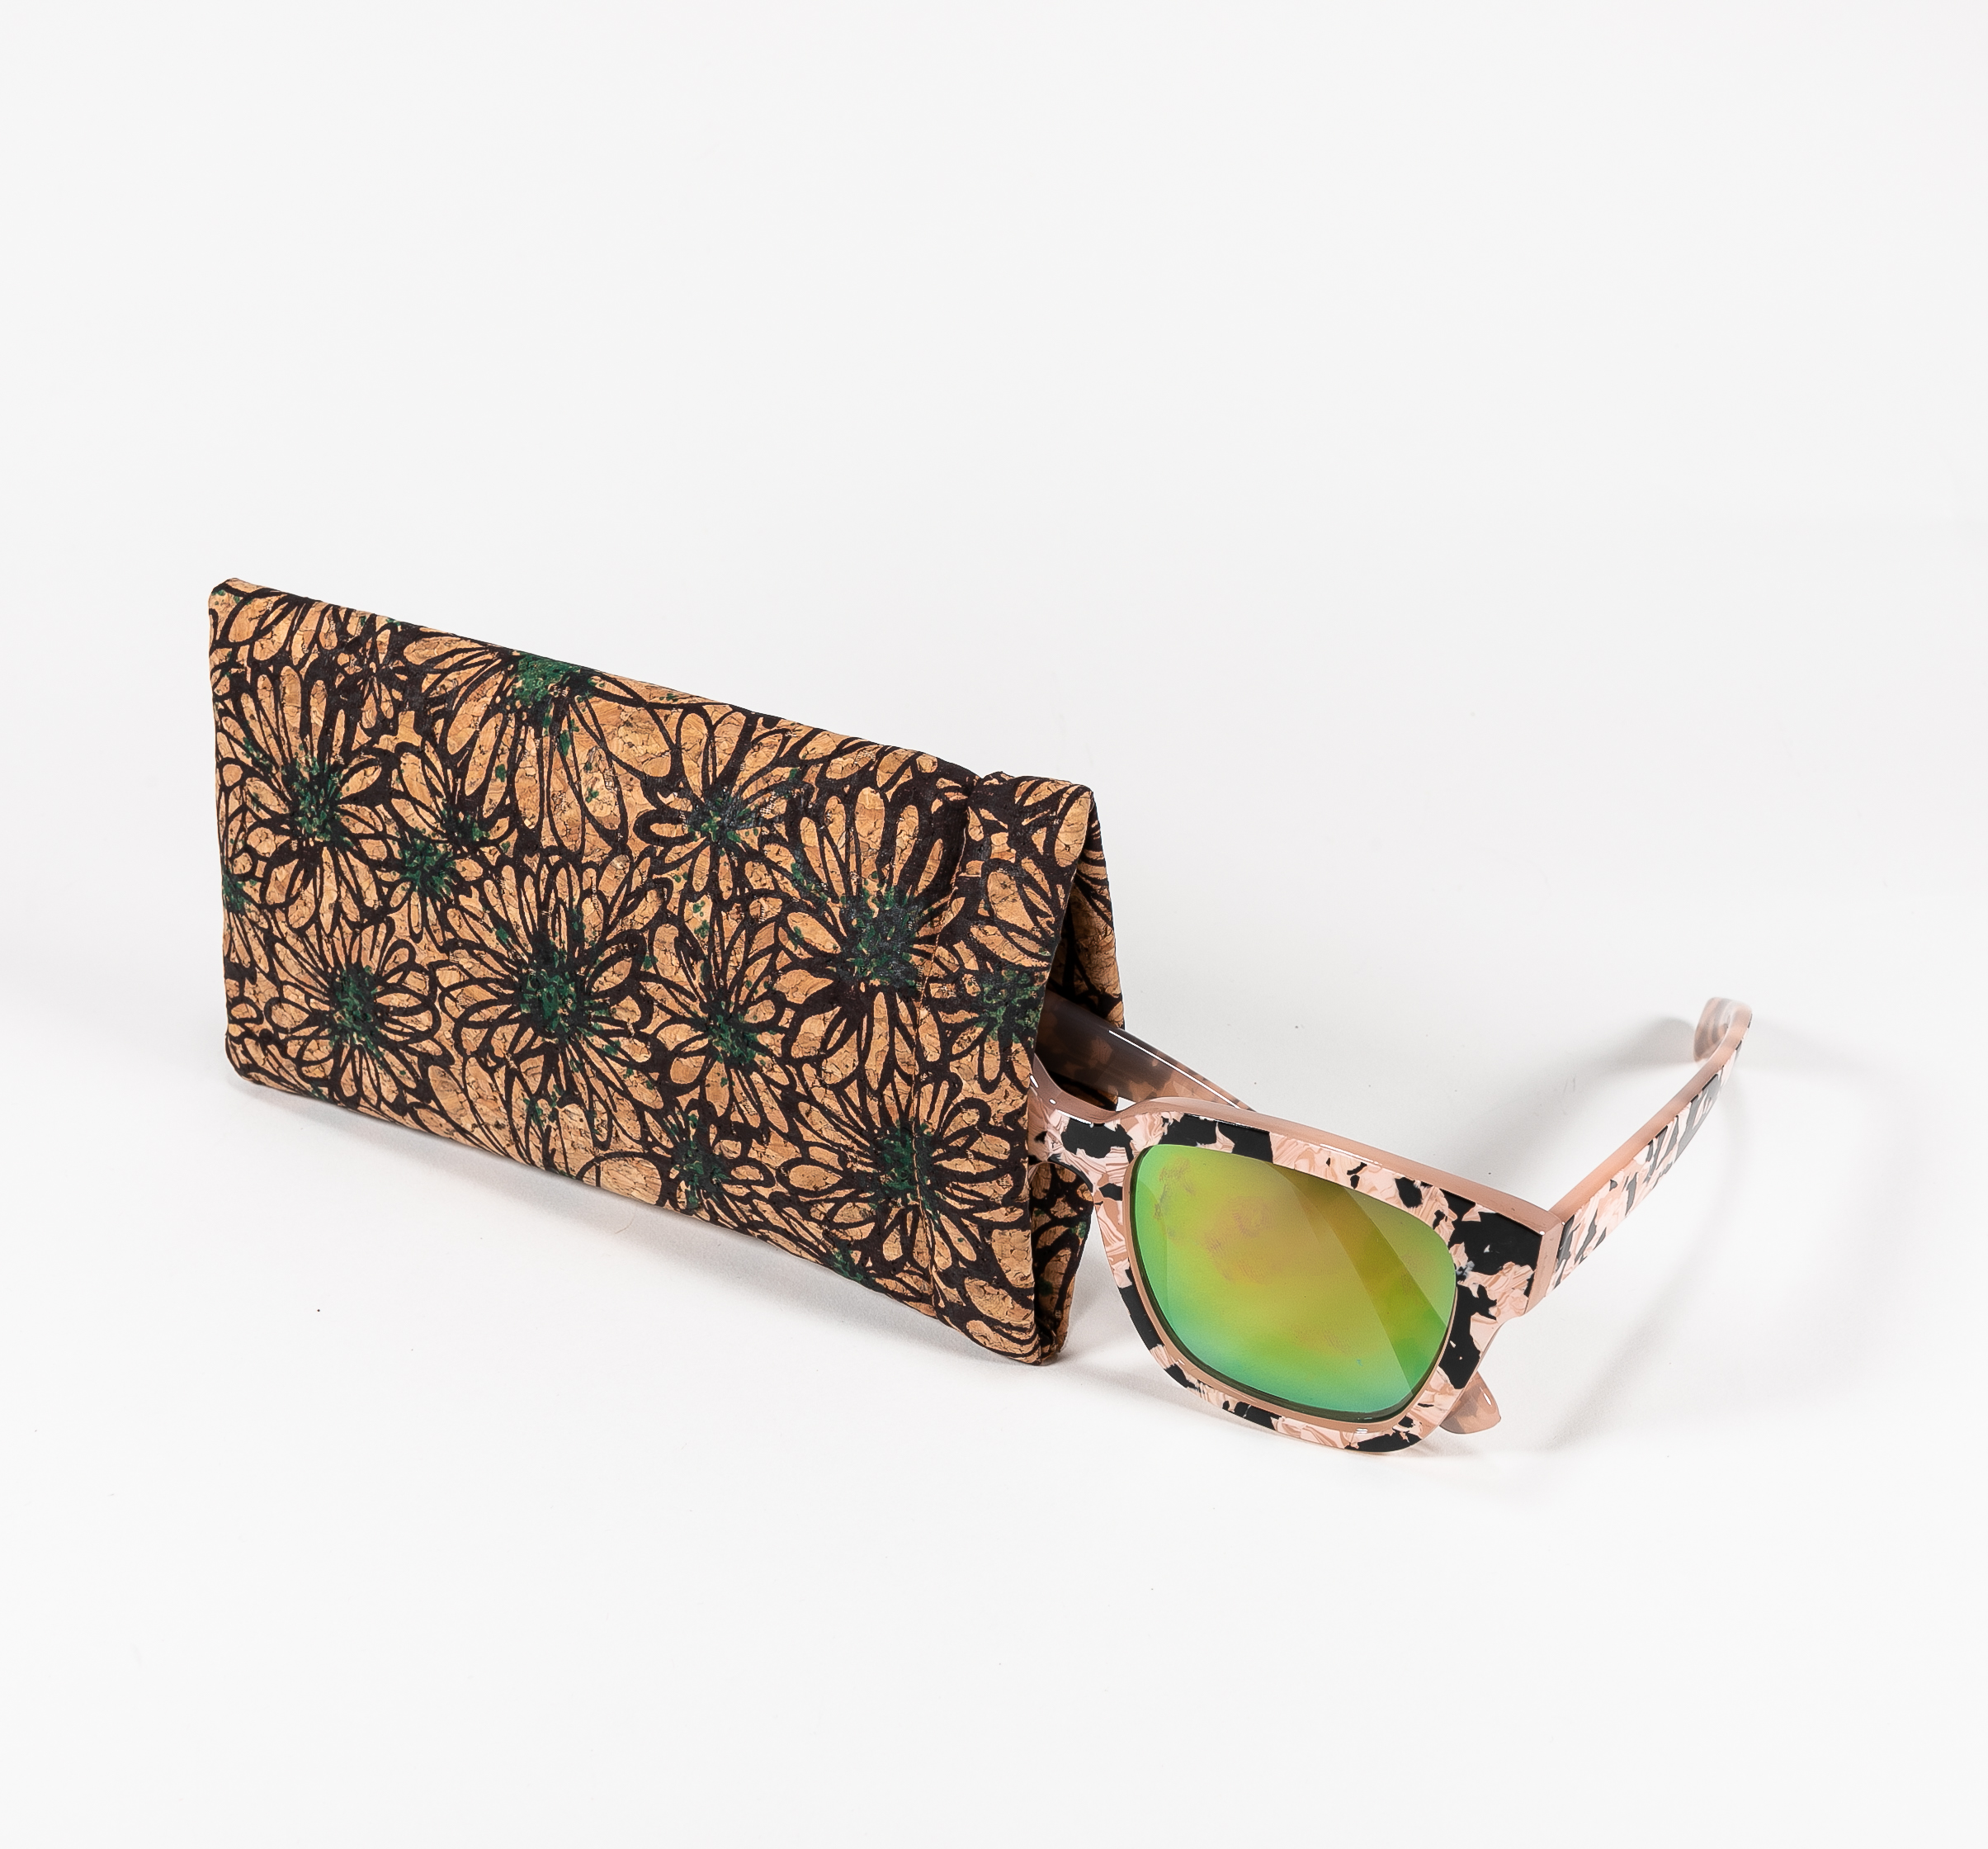 2021 Sunglasses 5 Styles of Eyewear Pockets, Printed with Irregular Patterns of Pocket